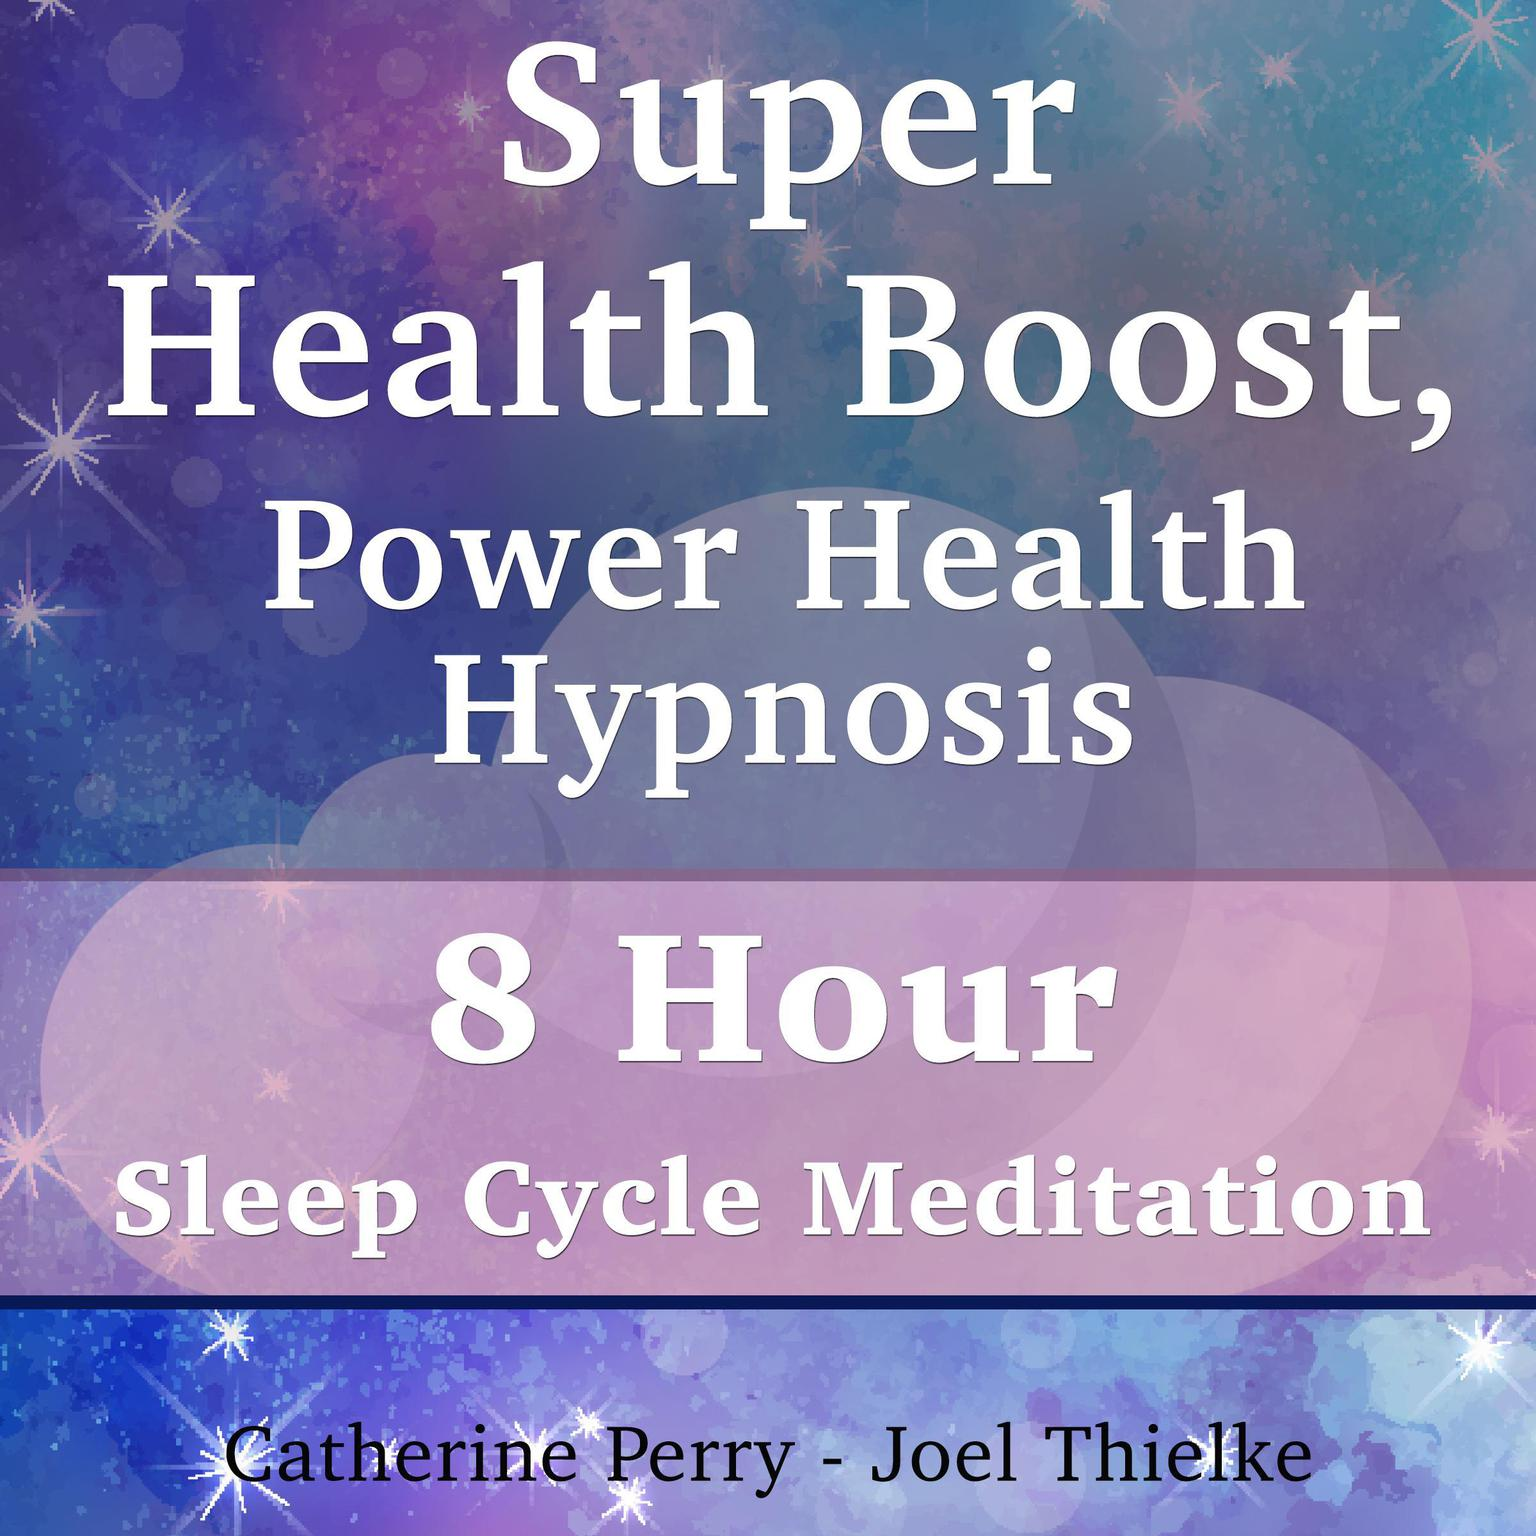 Printable Super Health Boost, Power Health Hypnosis: 8 Hour Sleep Cycle Meditation Audiobook Cover Art